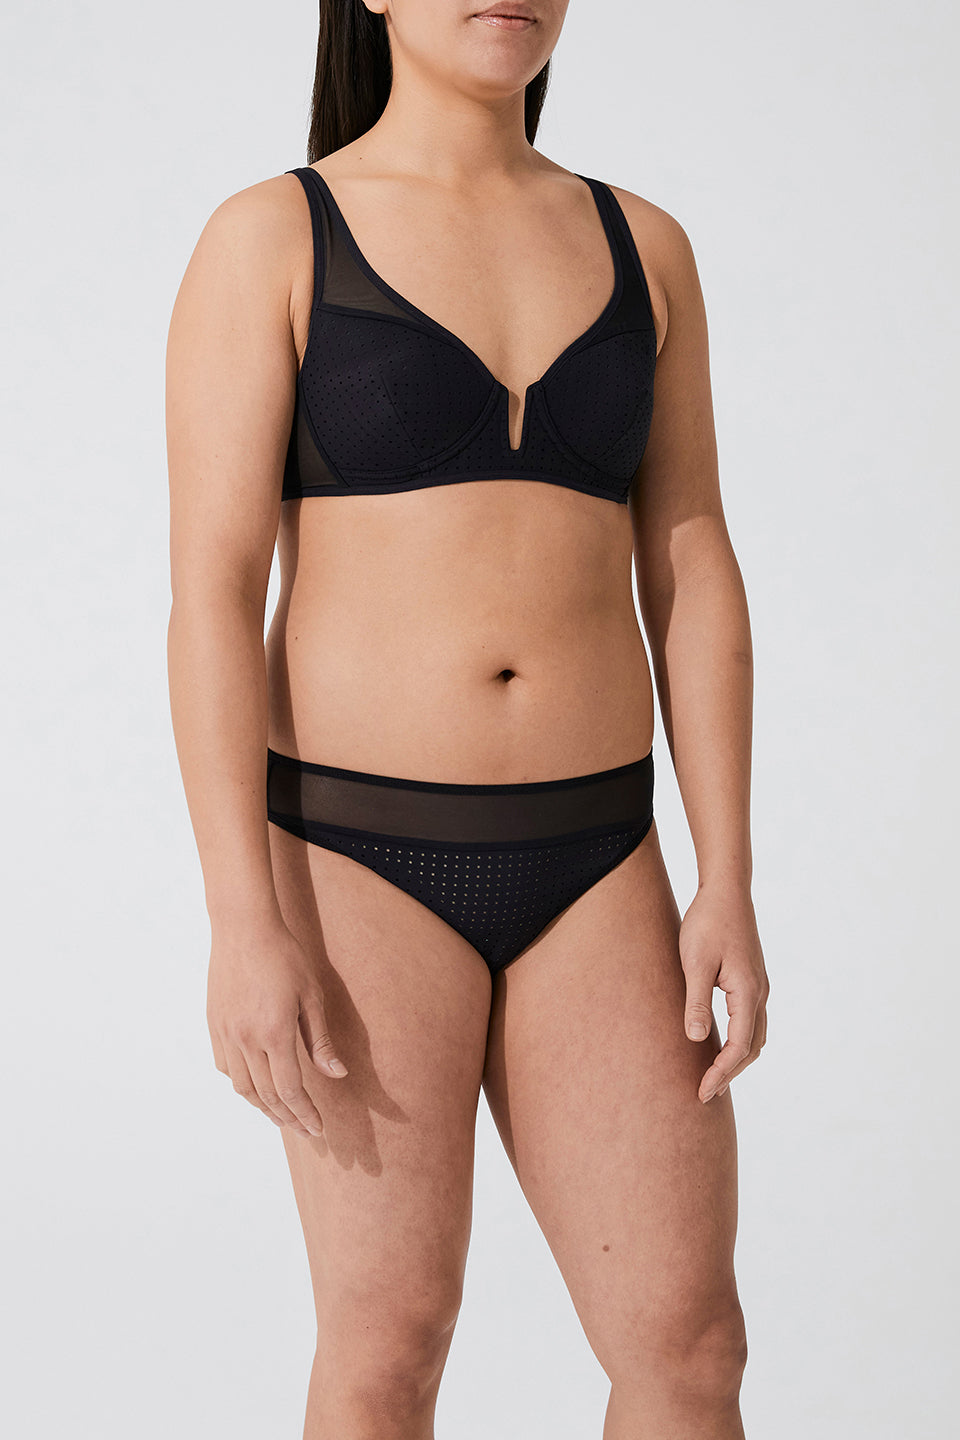 SOPHIE PERFORATED SPACER BRA